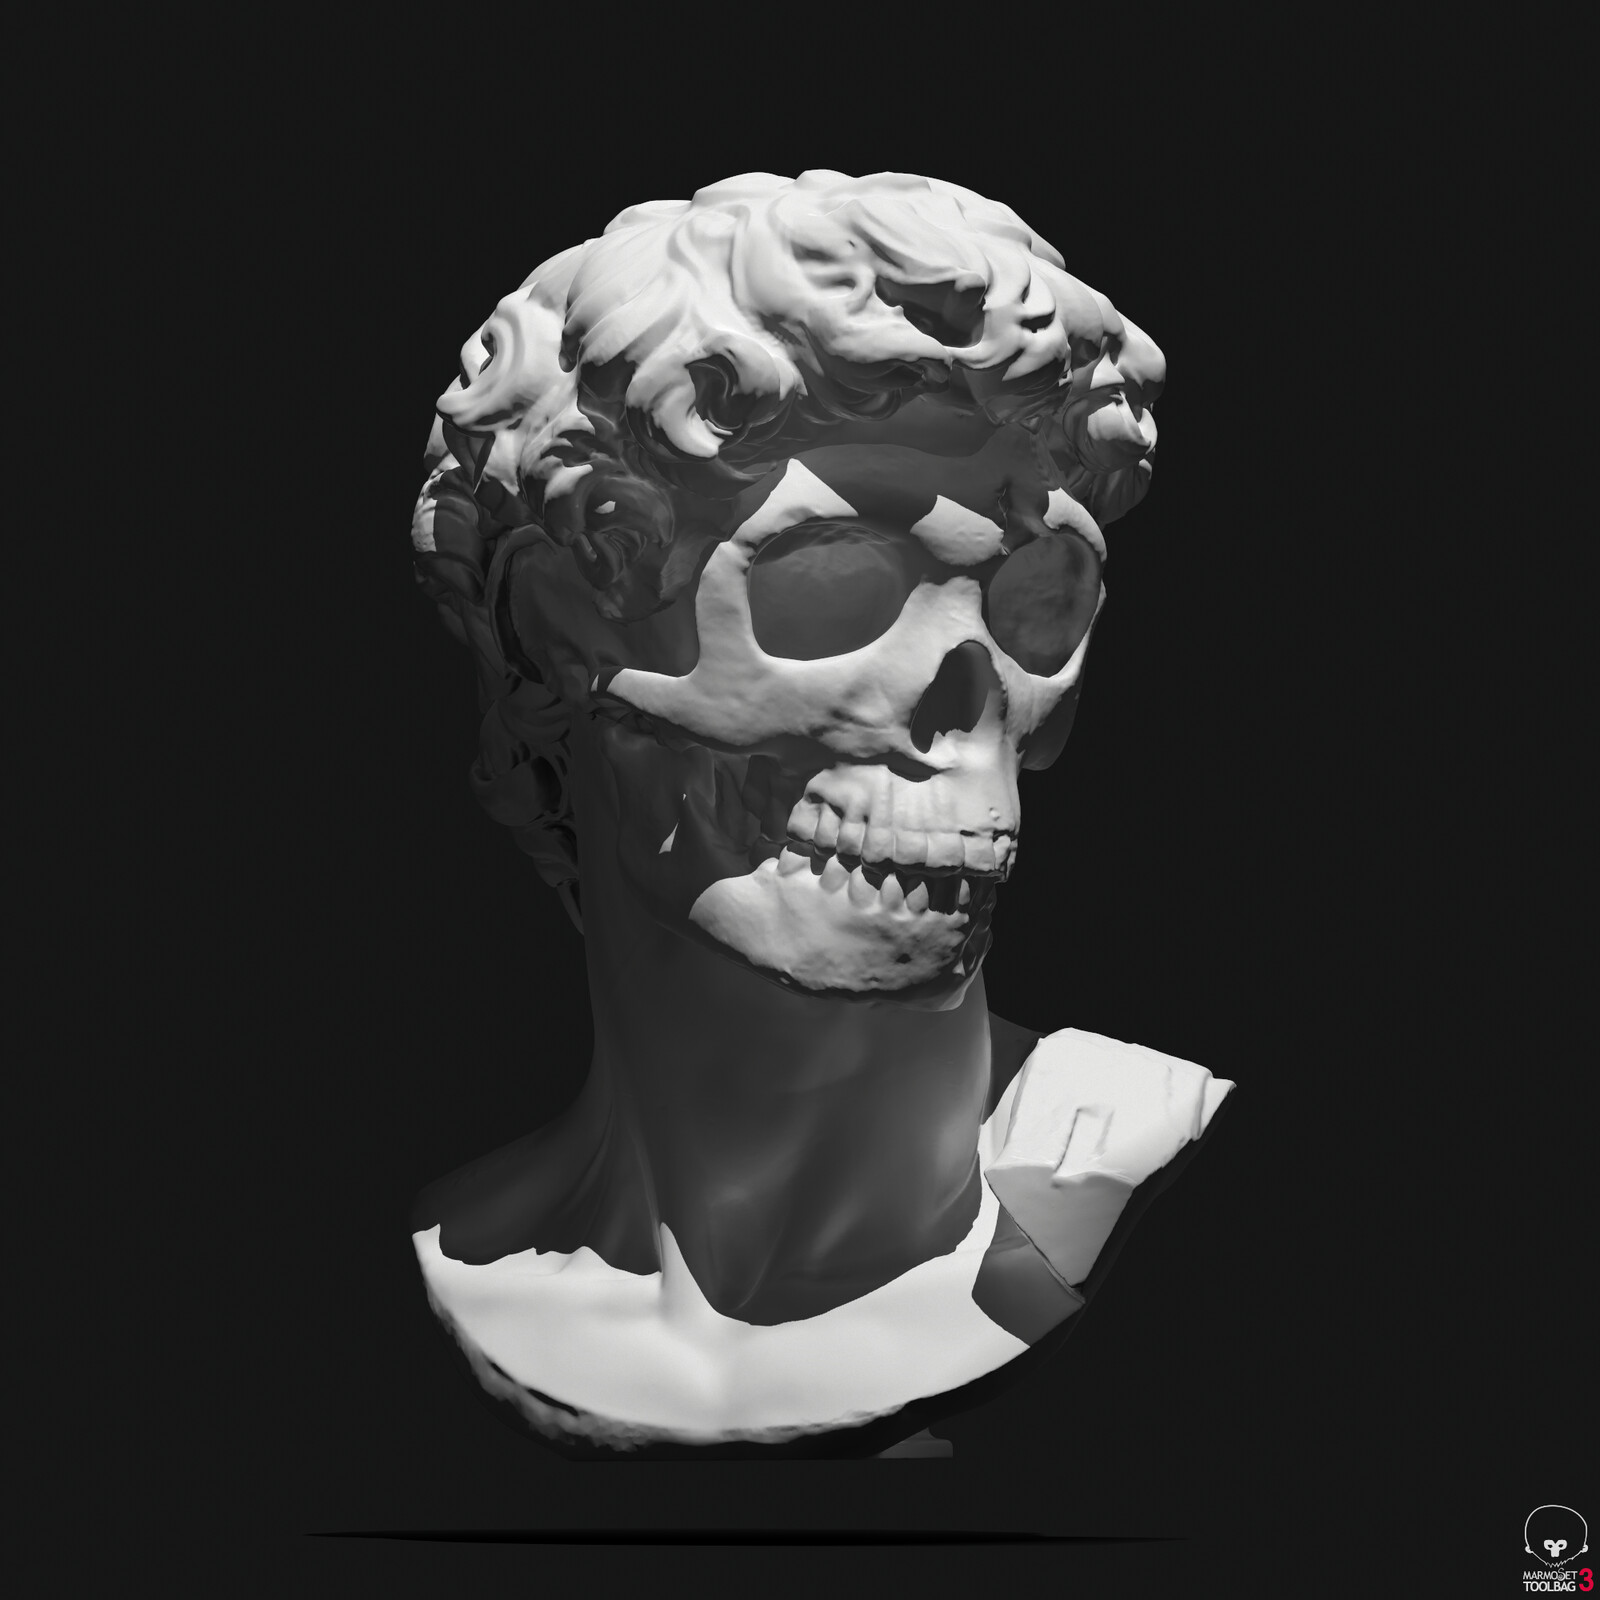 David's michelangelo bust revisited by myself